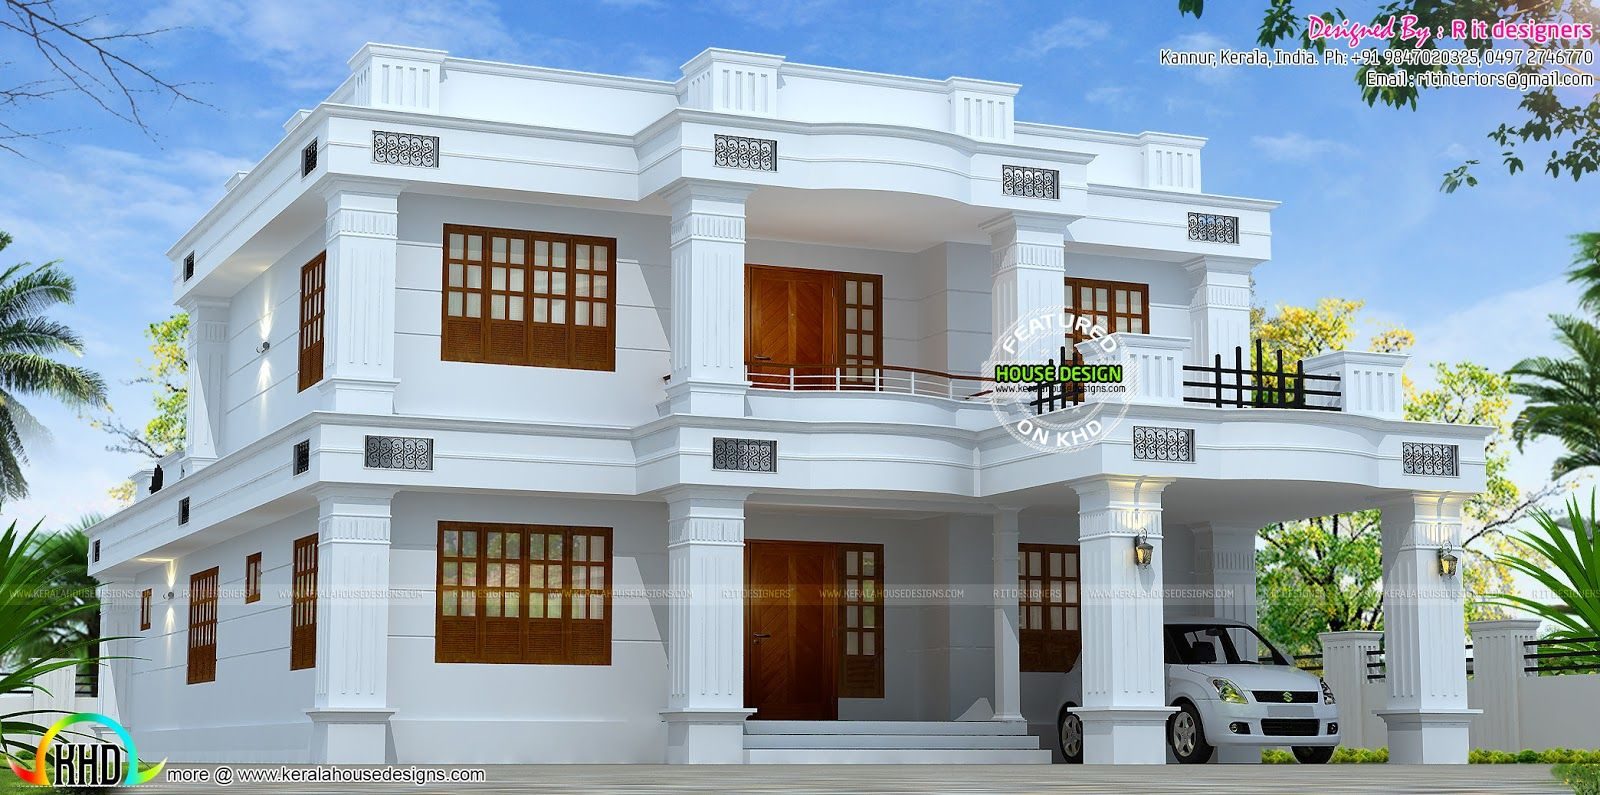 images of home design. sq ft bedroom kerala home design floor plans modern  villa